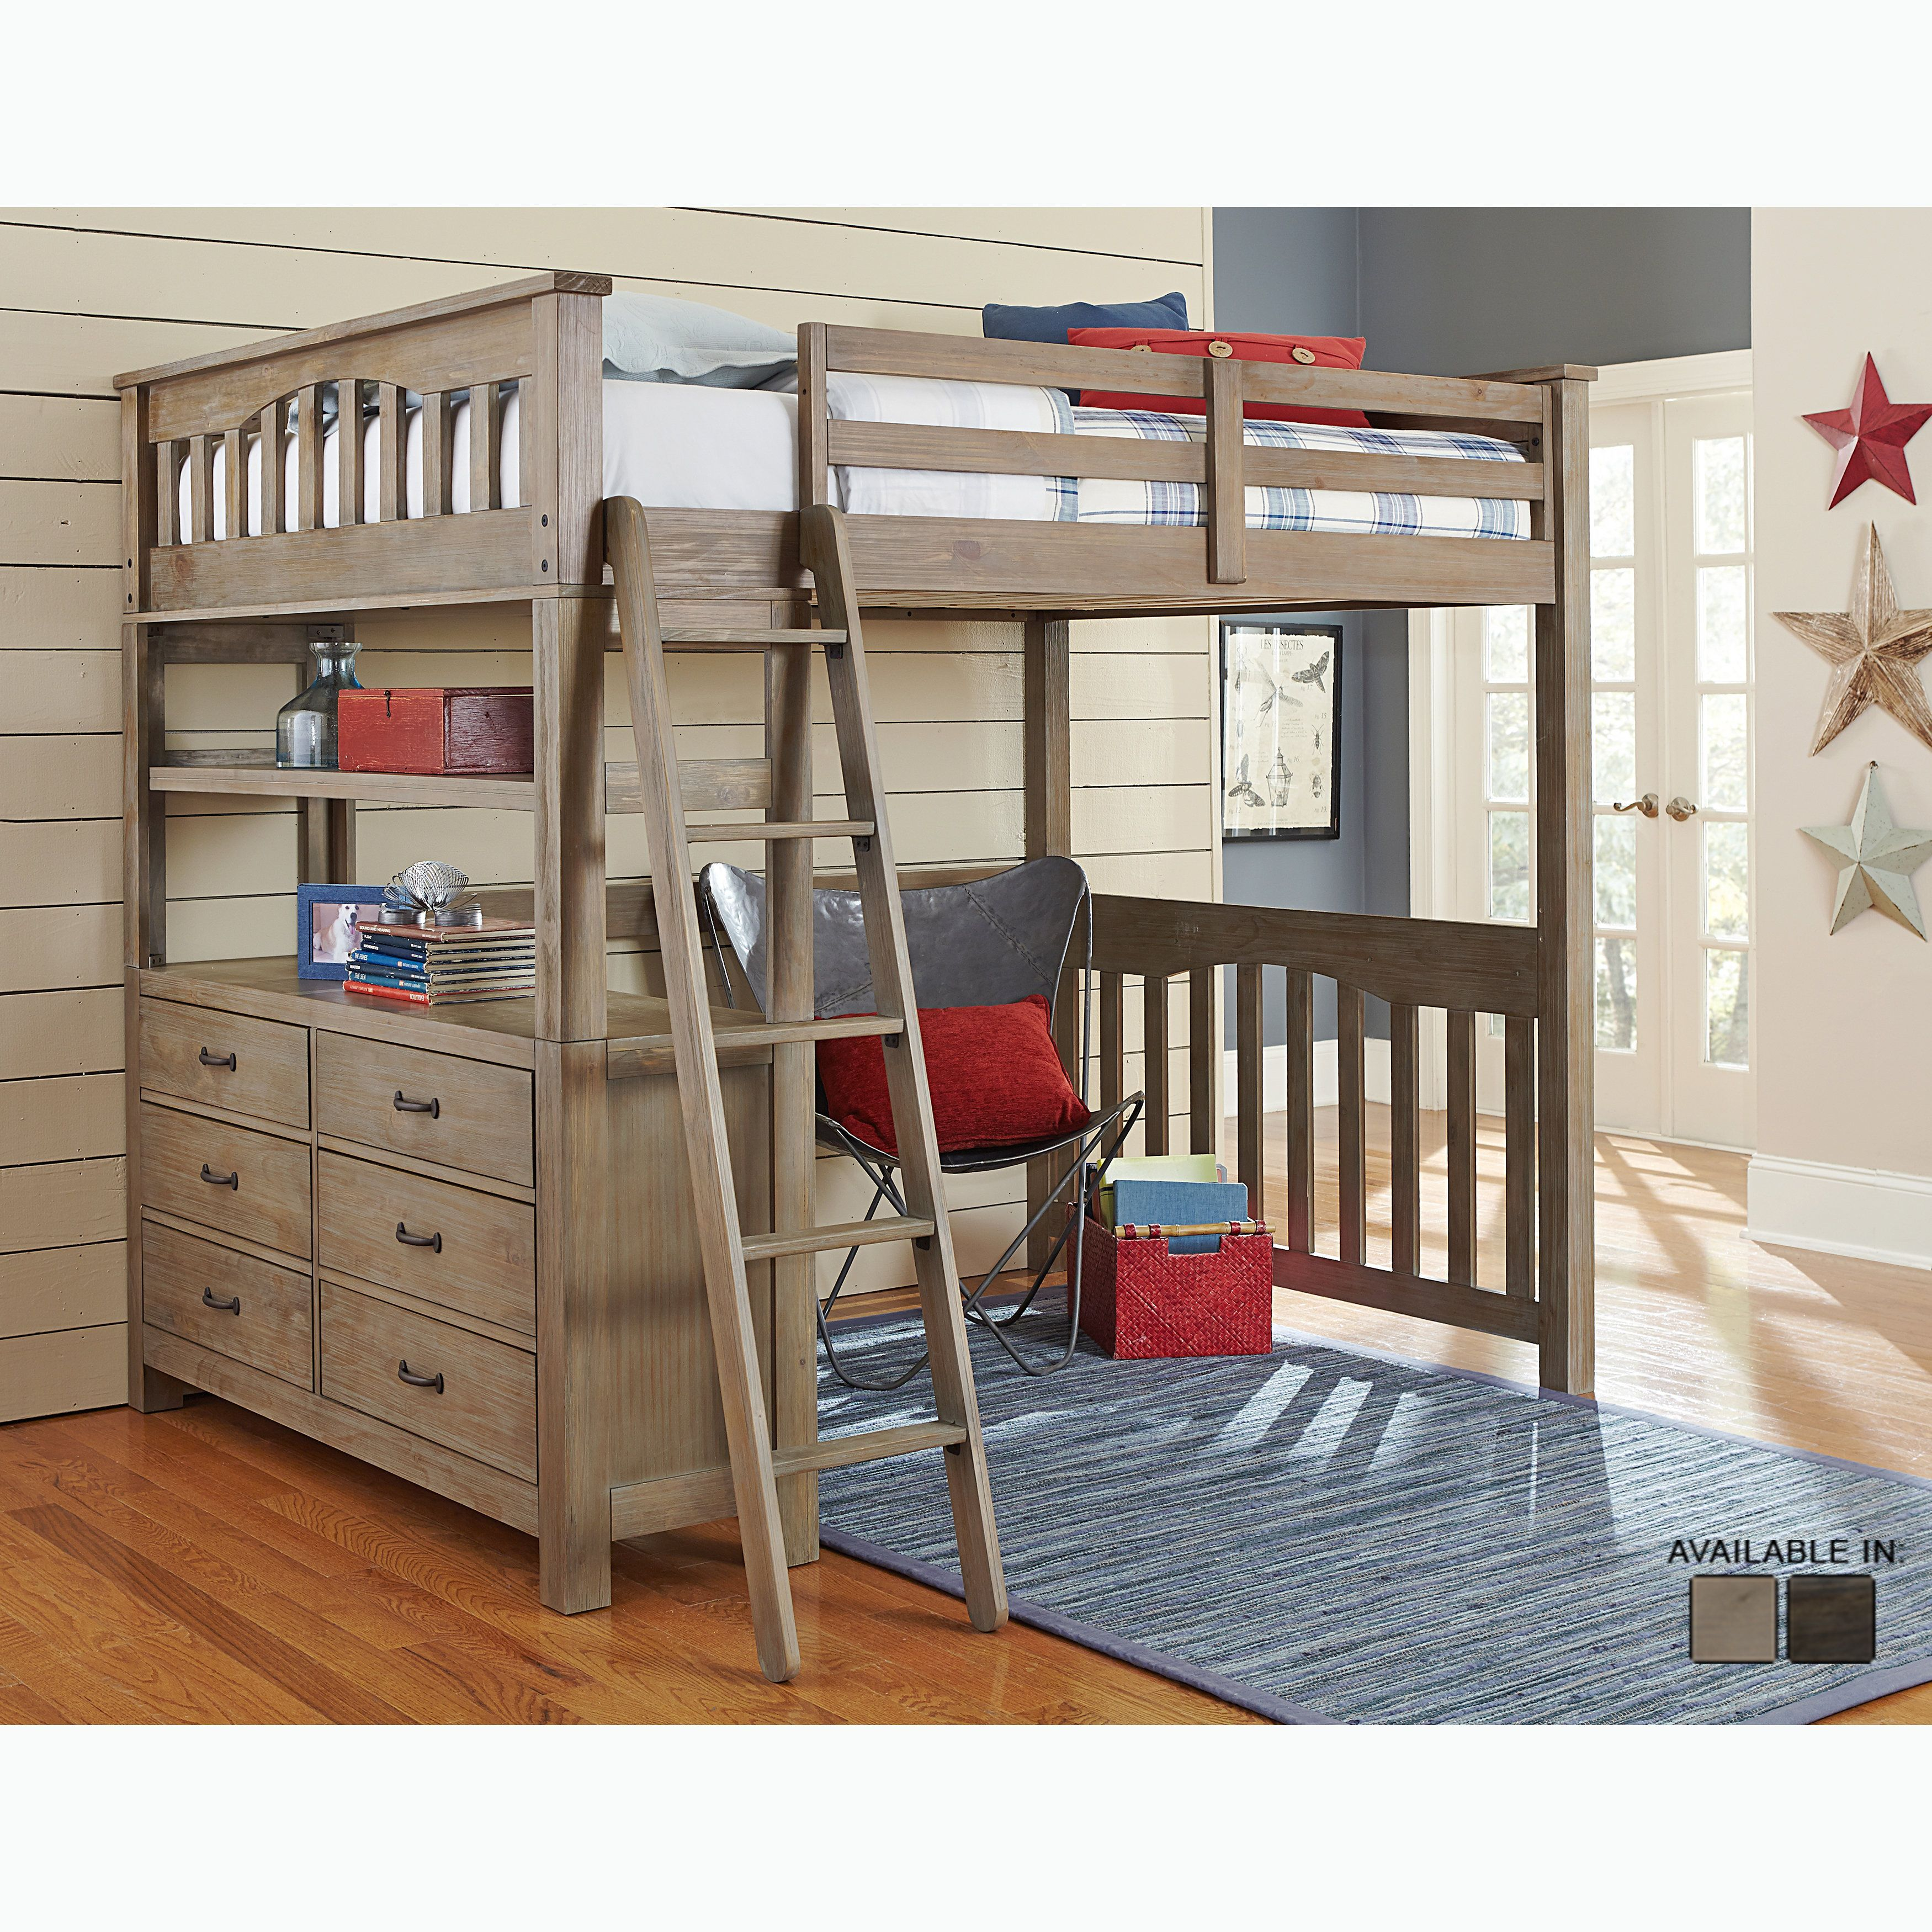 Double loft bed with desk  NE Kids Highlands Collection Pine Driftwood Brown Full Loft Bed